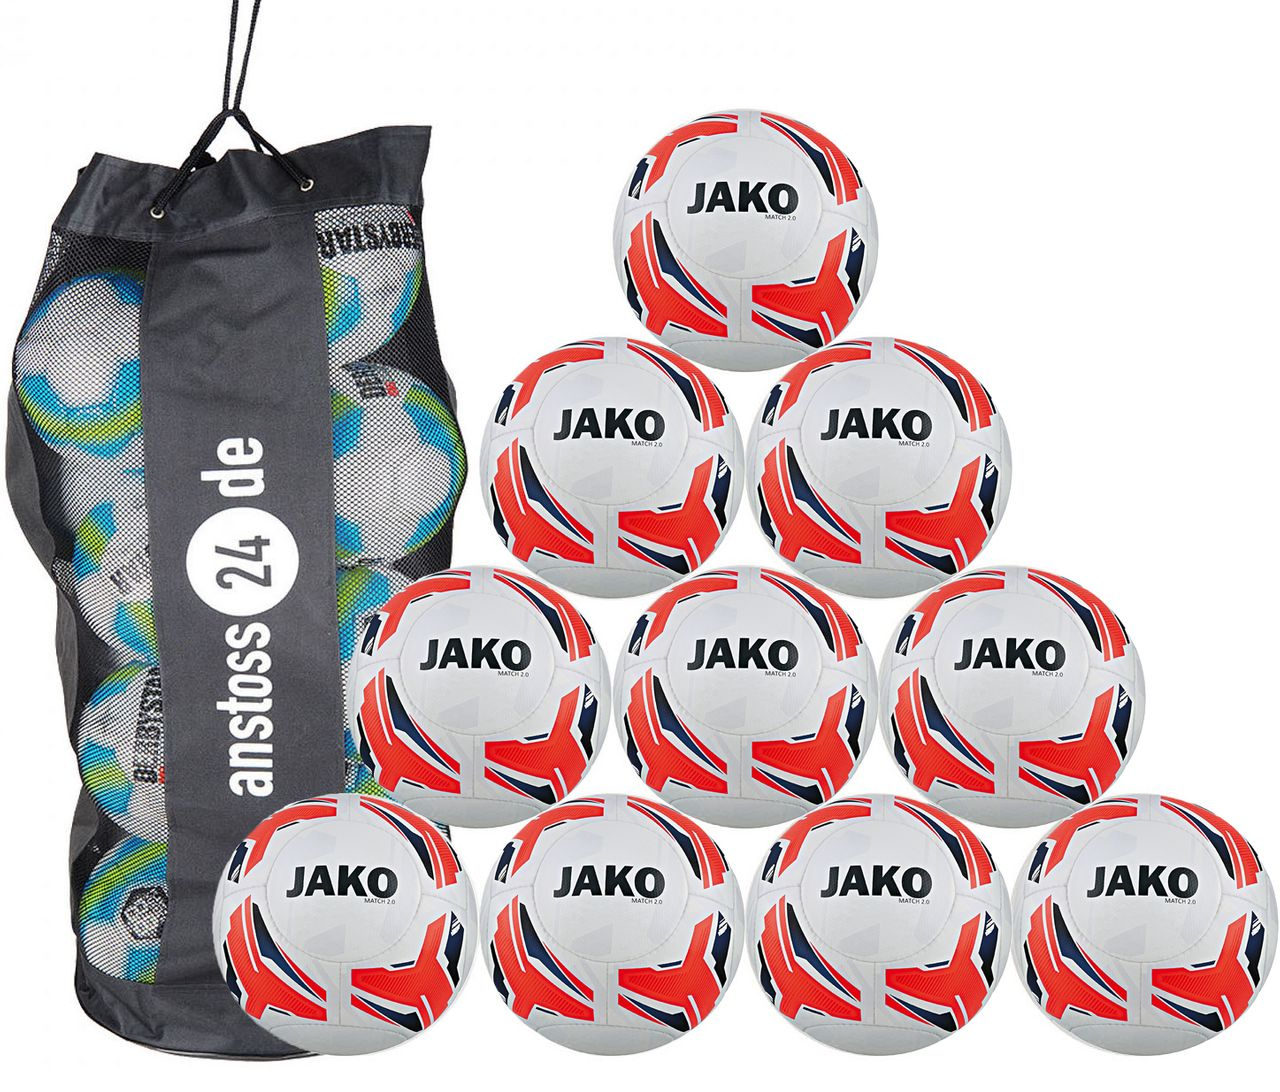 10 x JAKO Training Ball Match 2.0 incl. ball sack